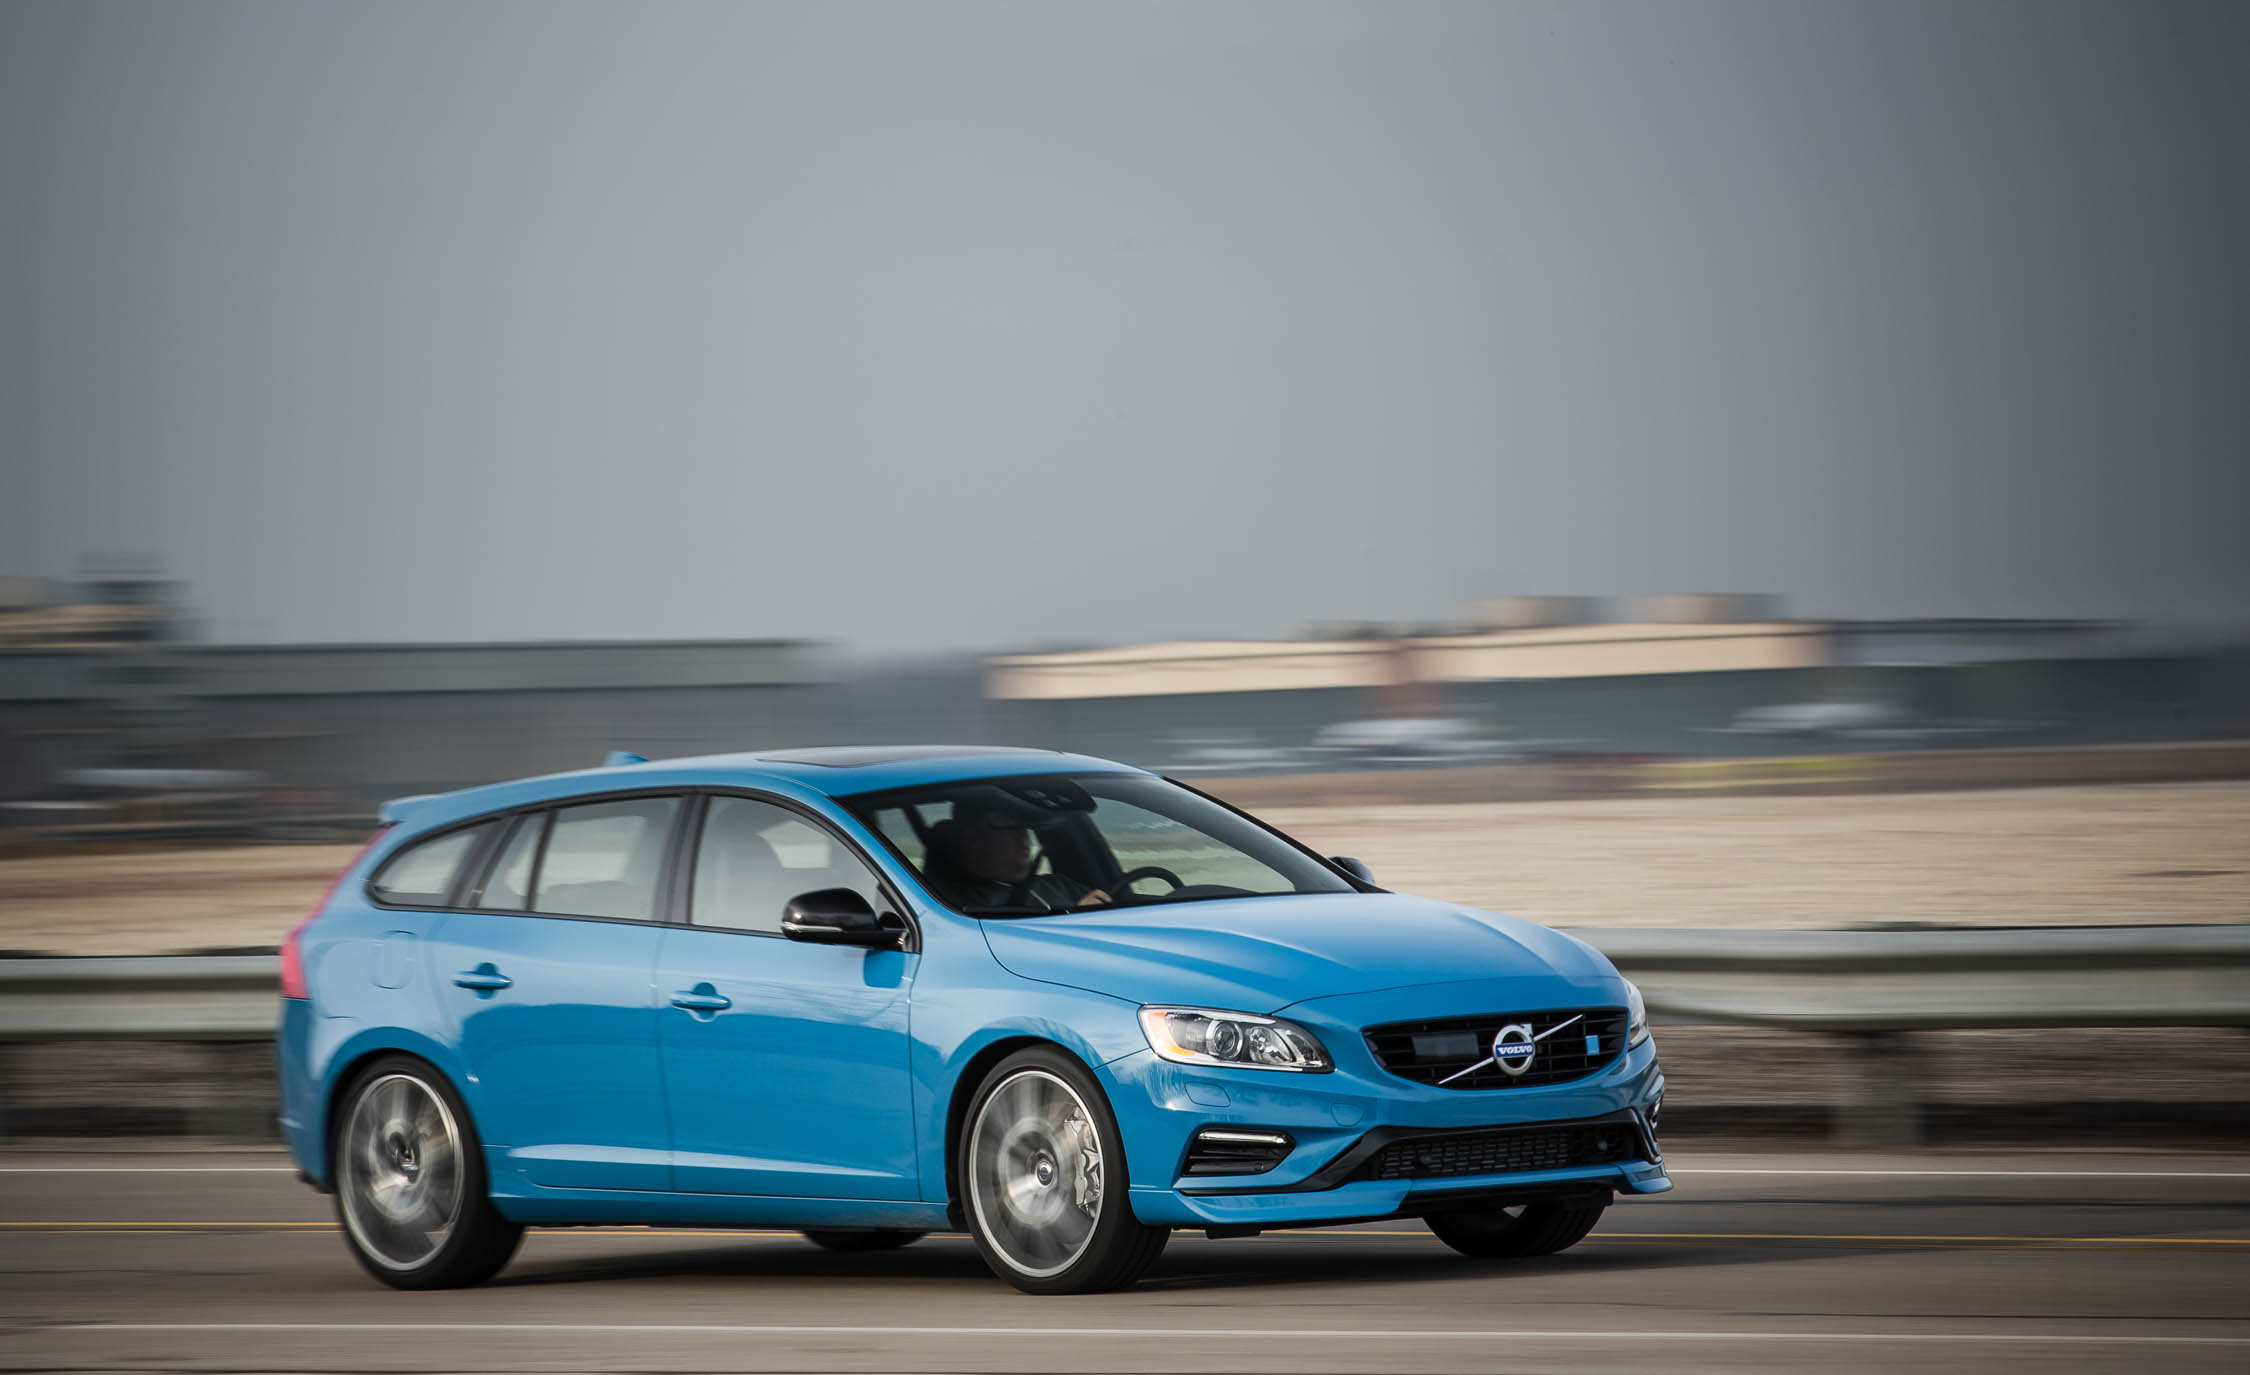 2017 Volvo V60 Polestar Blue Metallic (Photo 1 of 53)